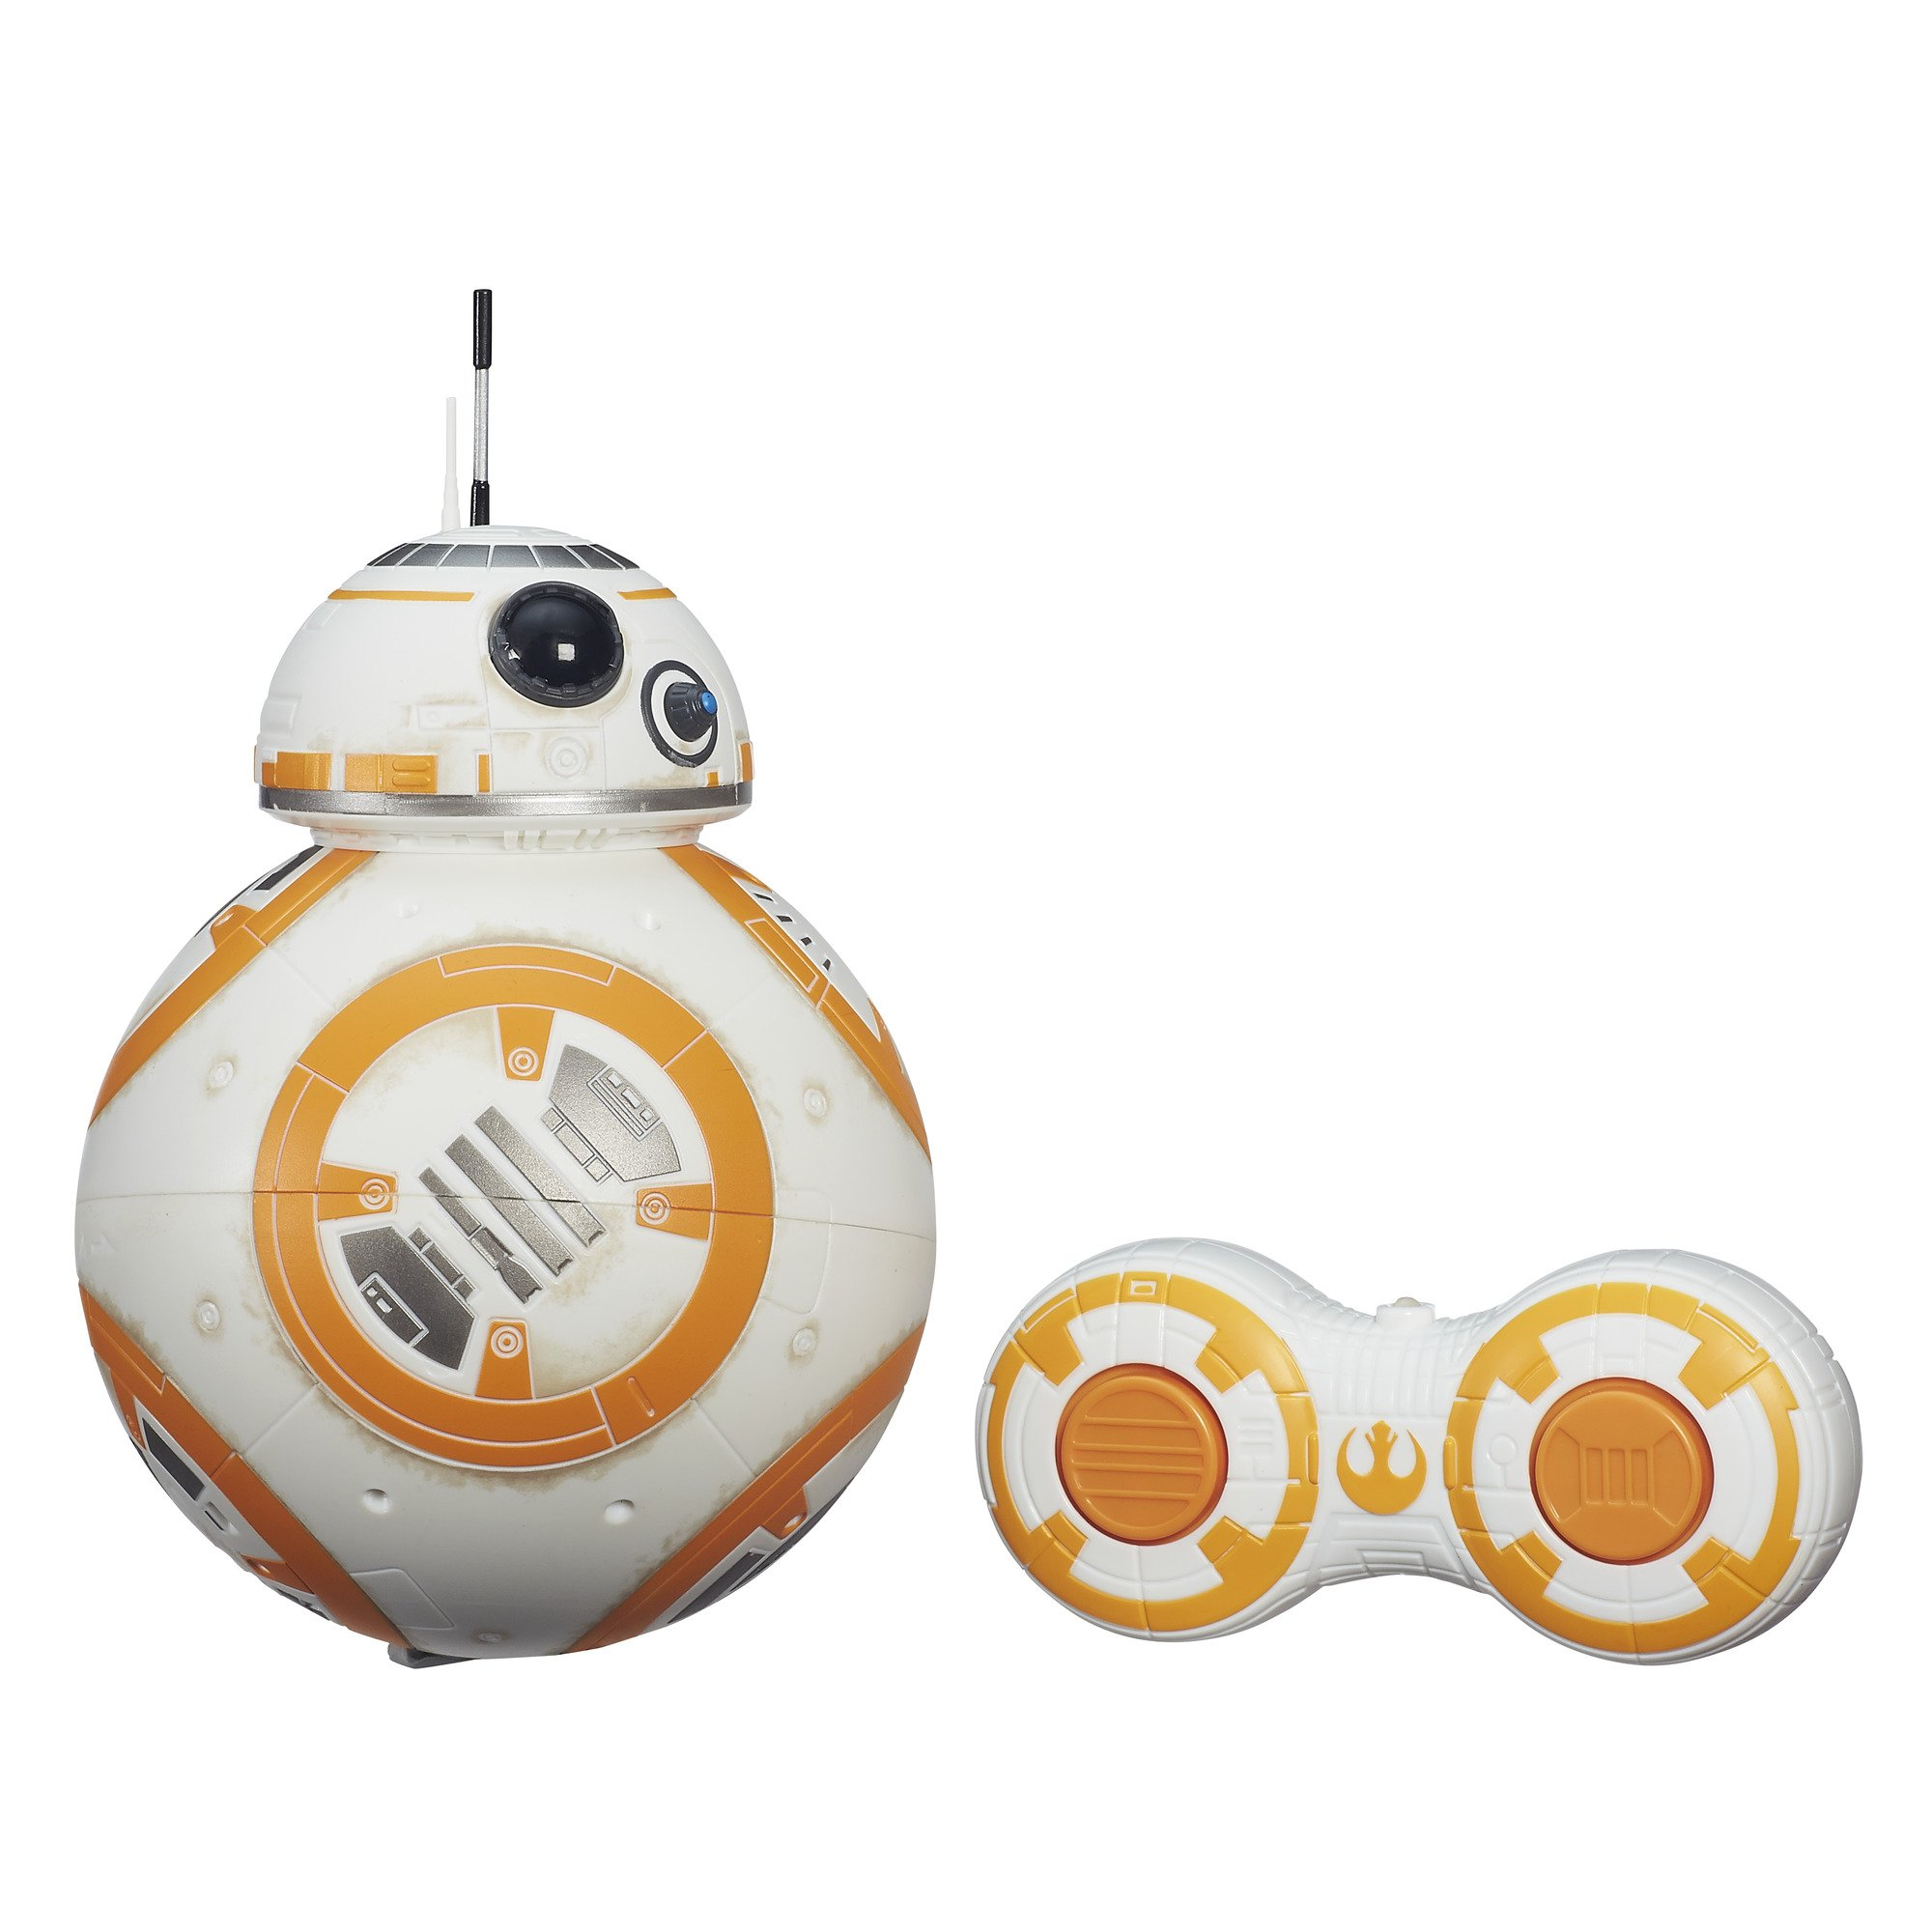 Star Wars The Force Awakens RC BB-8 by Star Wars (Image #1)